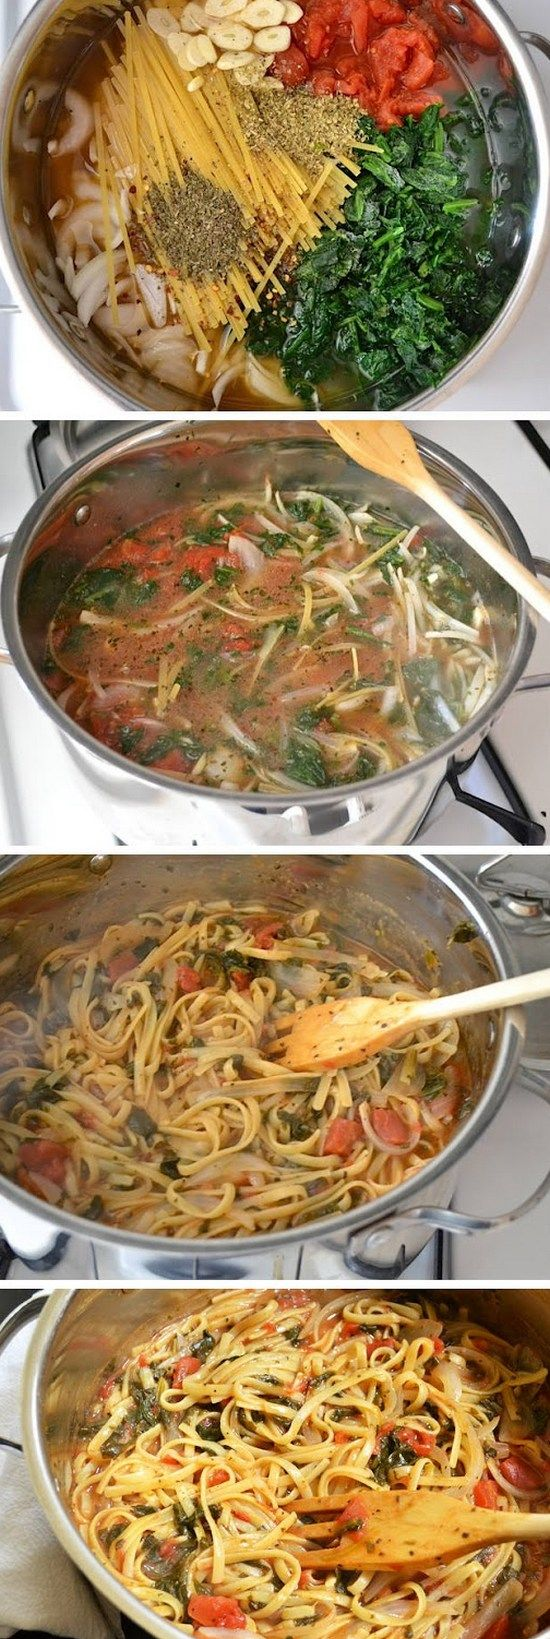 Italian Wonderpot Recipe! The Pasta Cooks in a Mixture of Broth, Herbs, and…